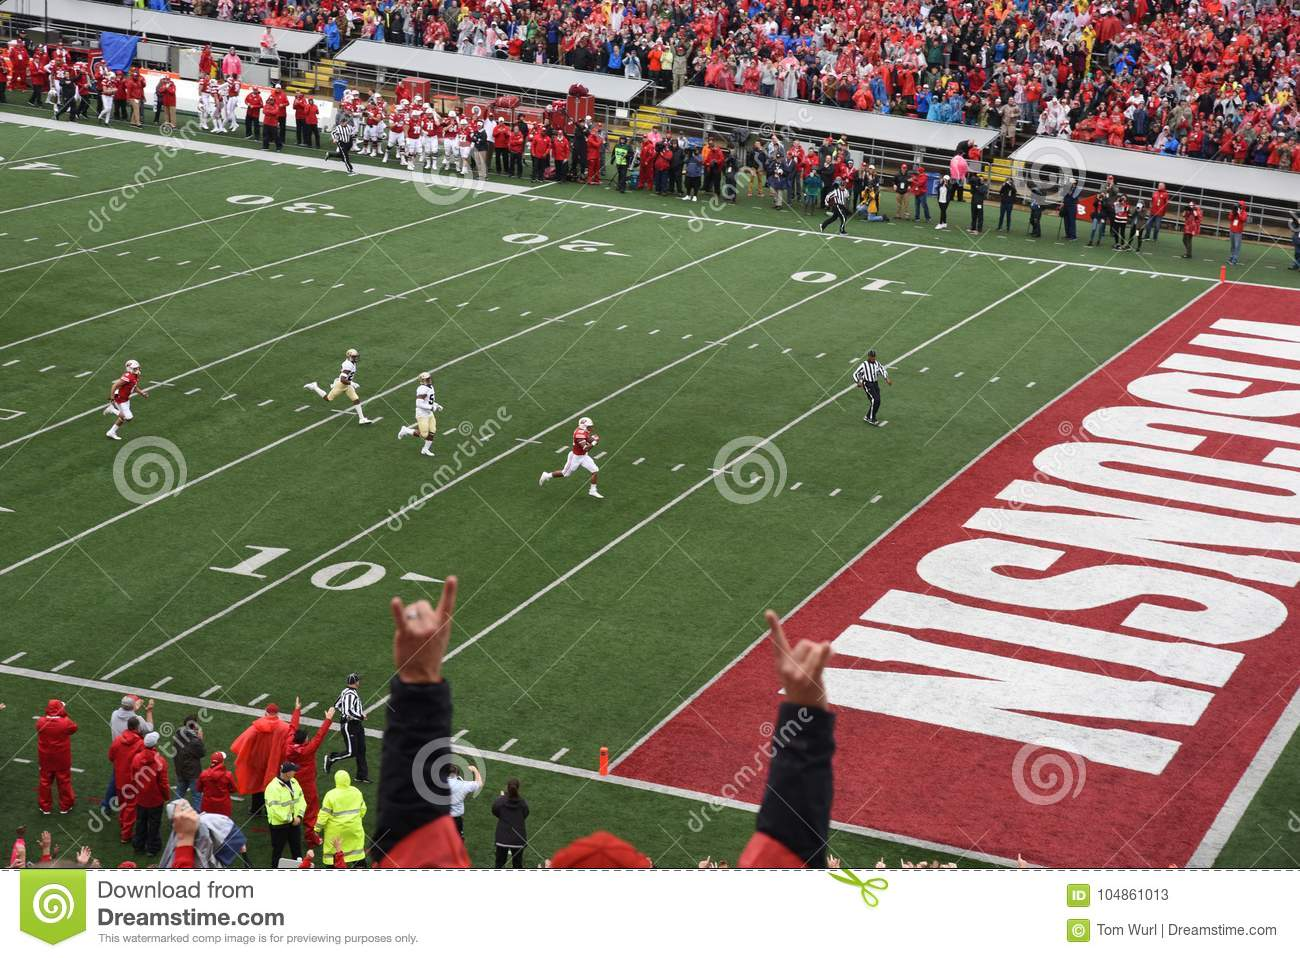 14 octobre 2017, camp Randall Stadium, Madison, le Wisconsin Running back Jonathan Taylor About To Score un touchdown pour le Wis